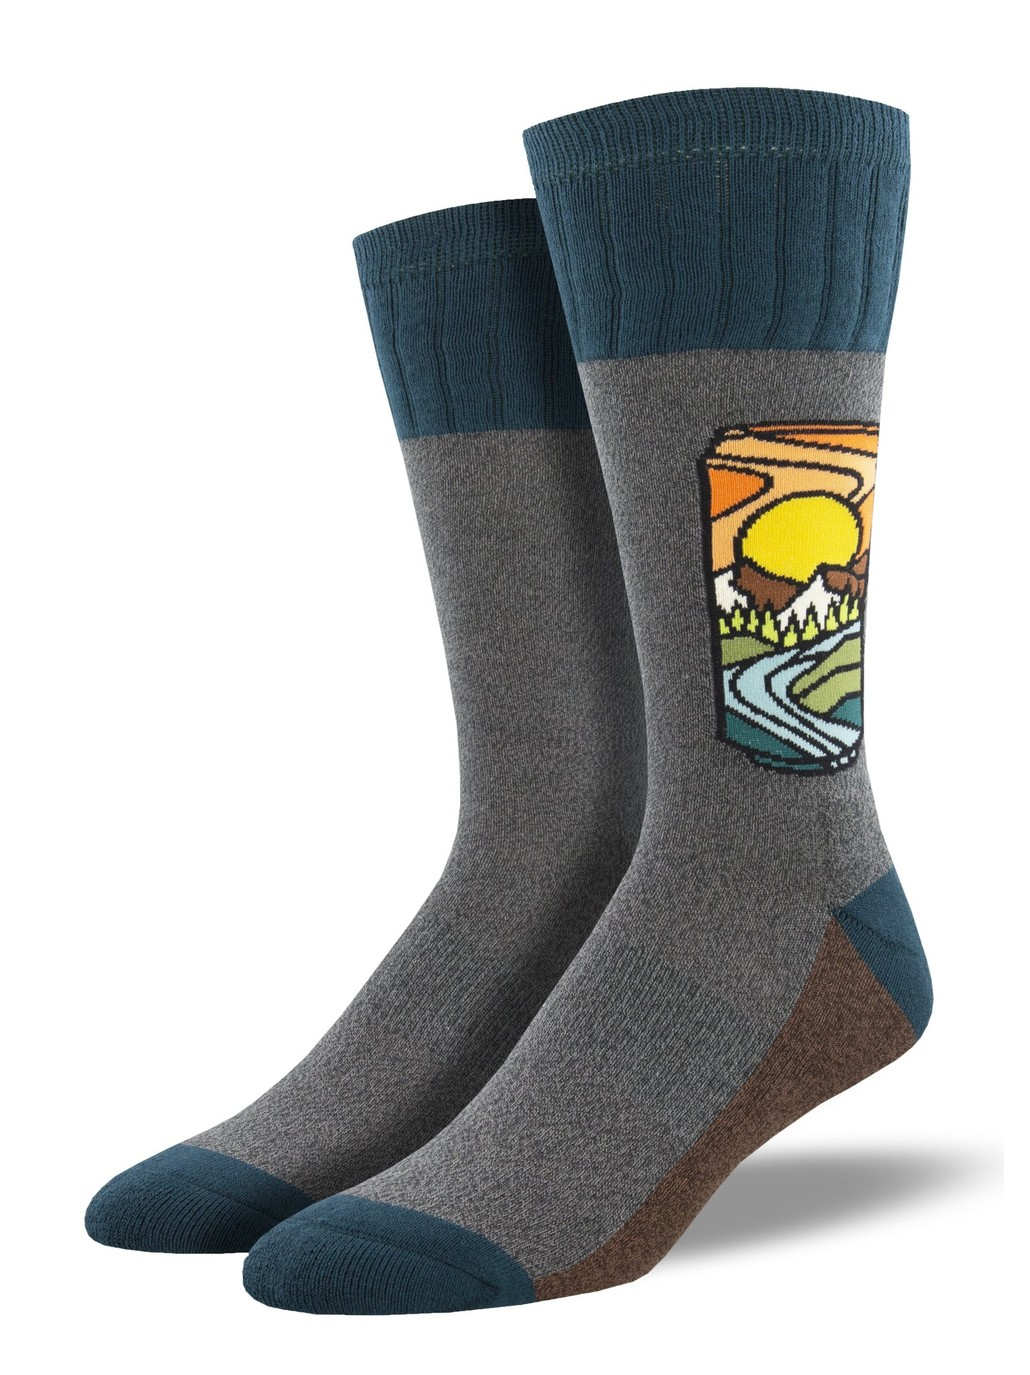 Gabby Maria Men's Brew with a View 2 Crew Socks